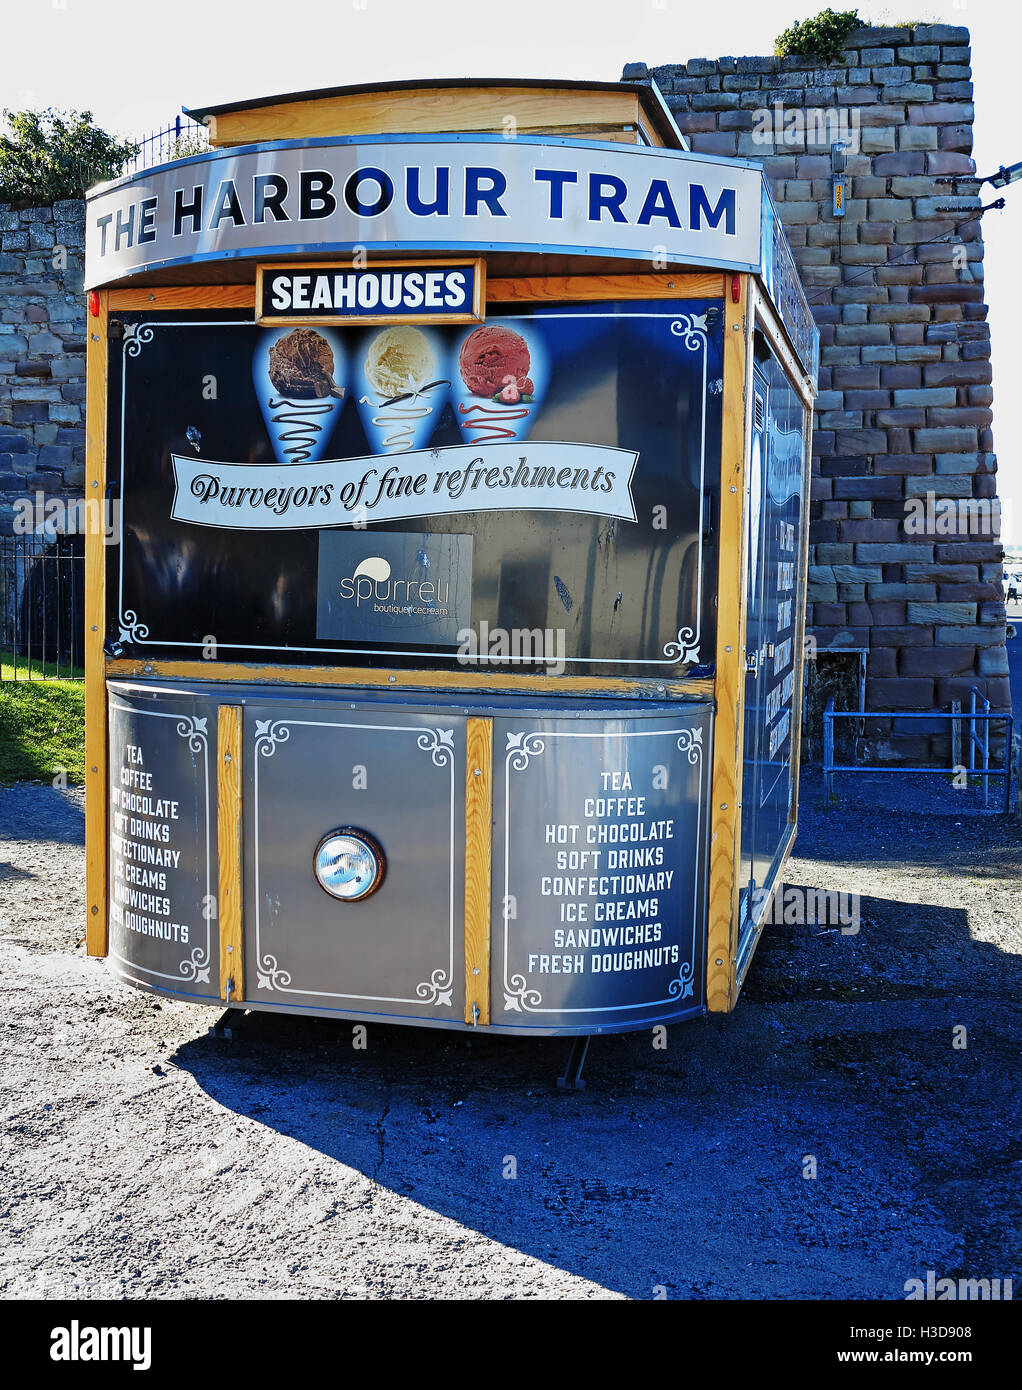 The harbour tram, parked at Seahouses - Stock Image